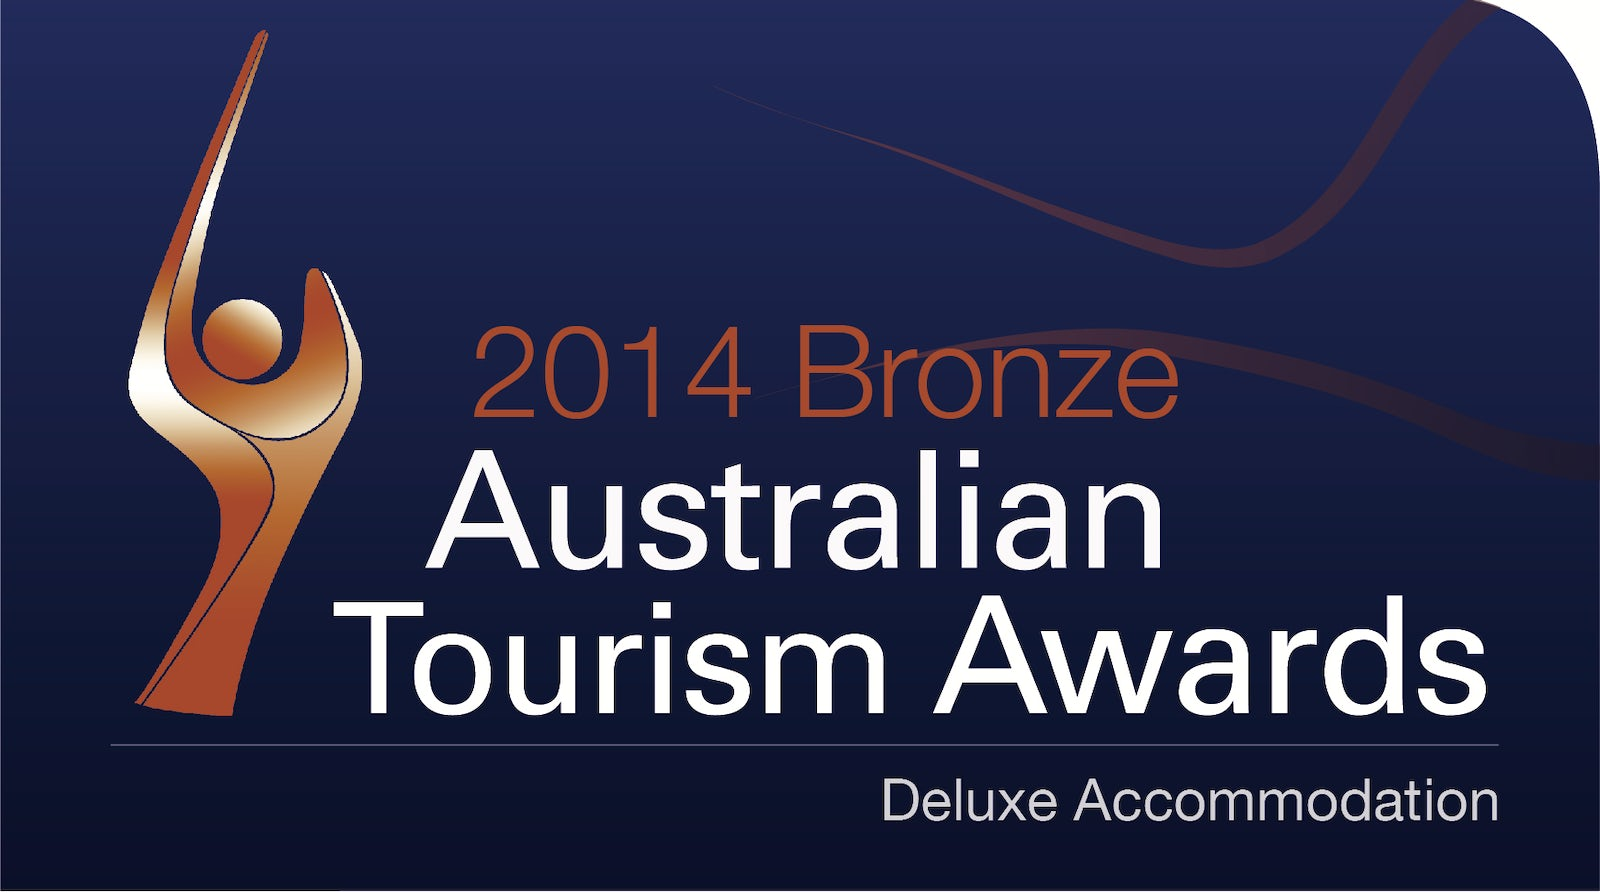 2014 Deluxe Accommodation Bronze Award